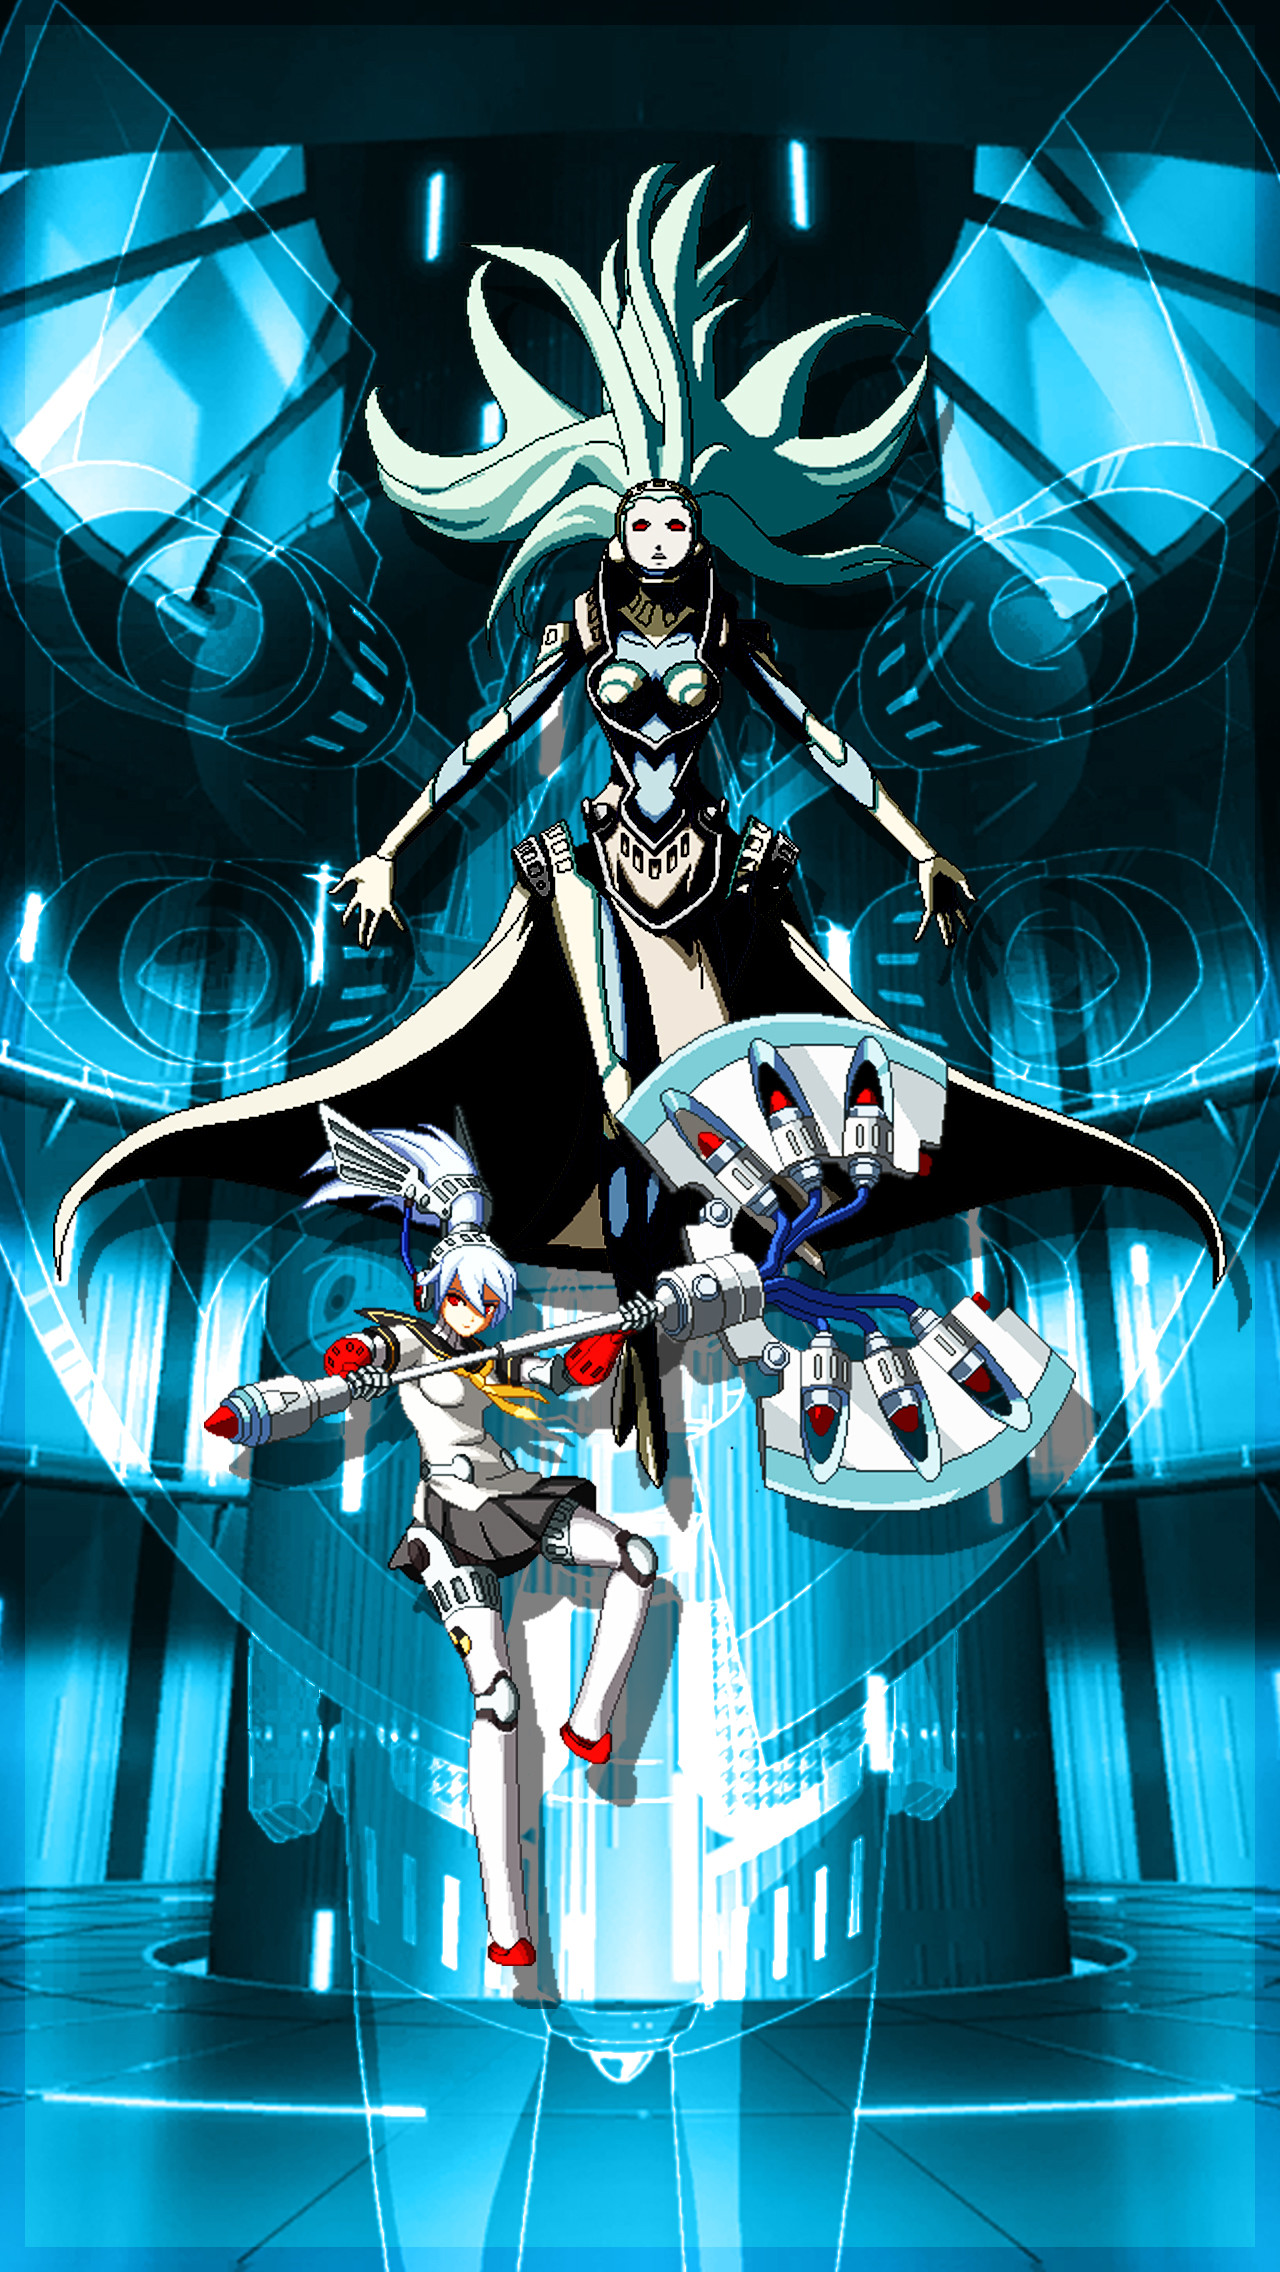 Labrys Persona q images